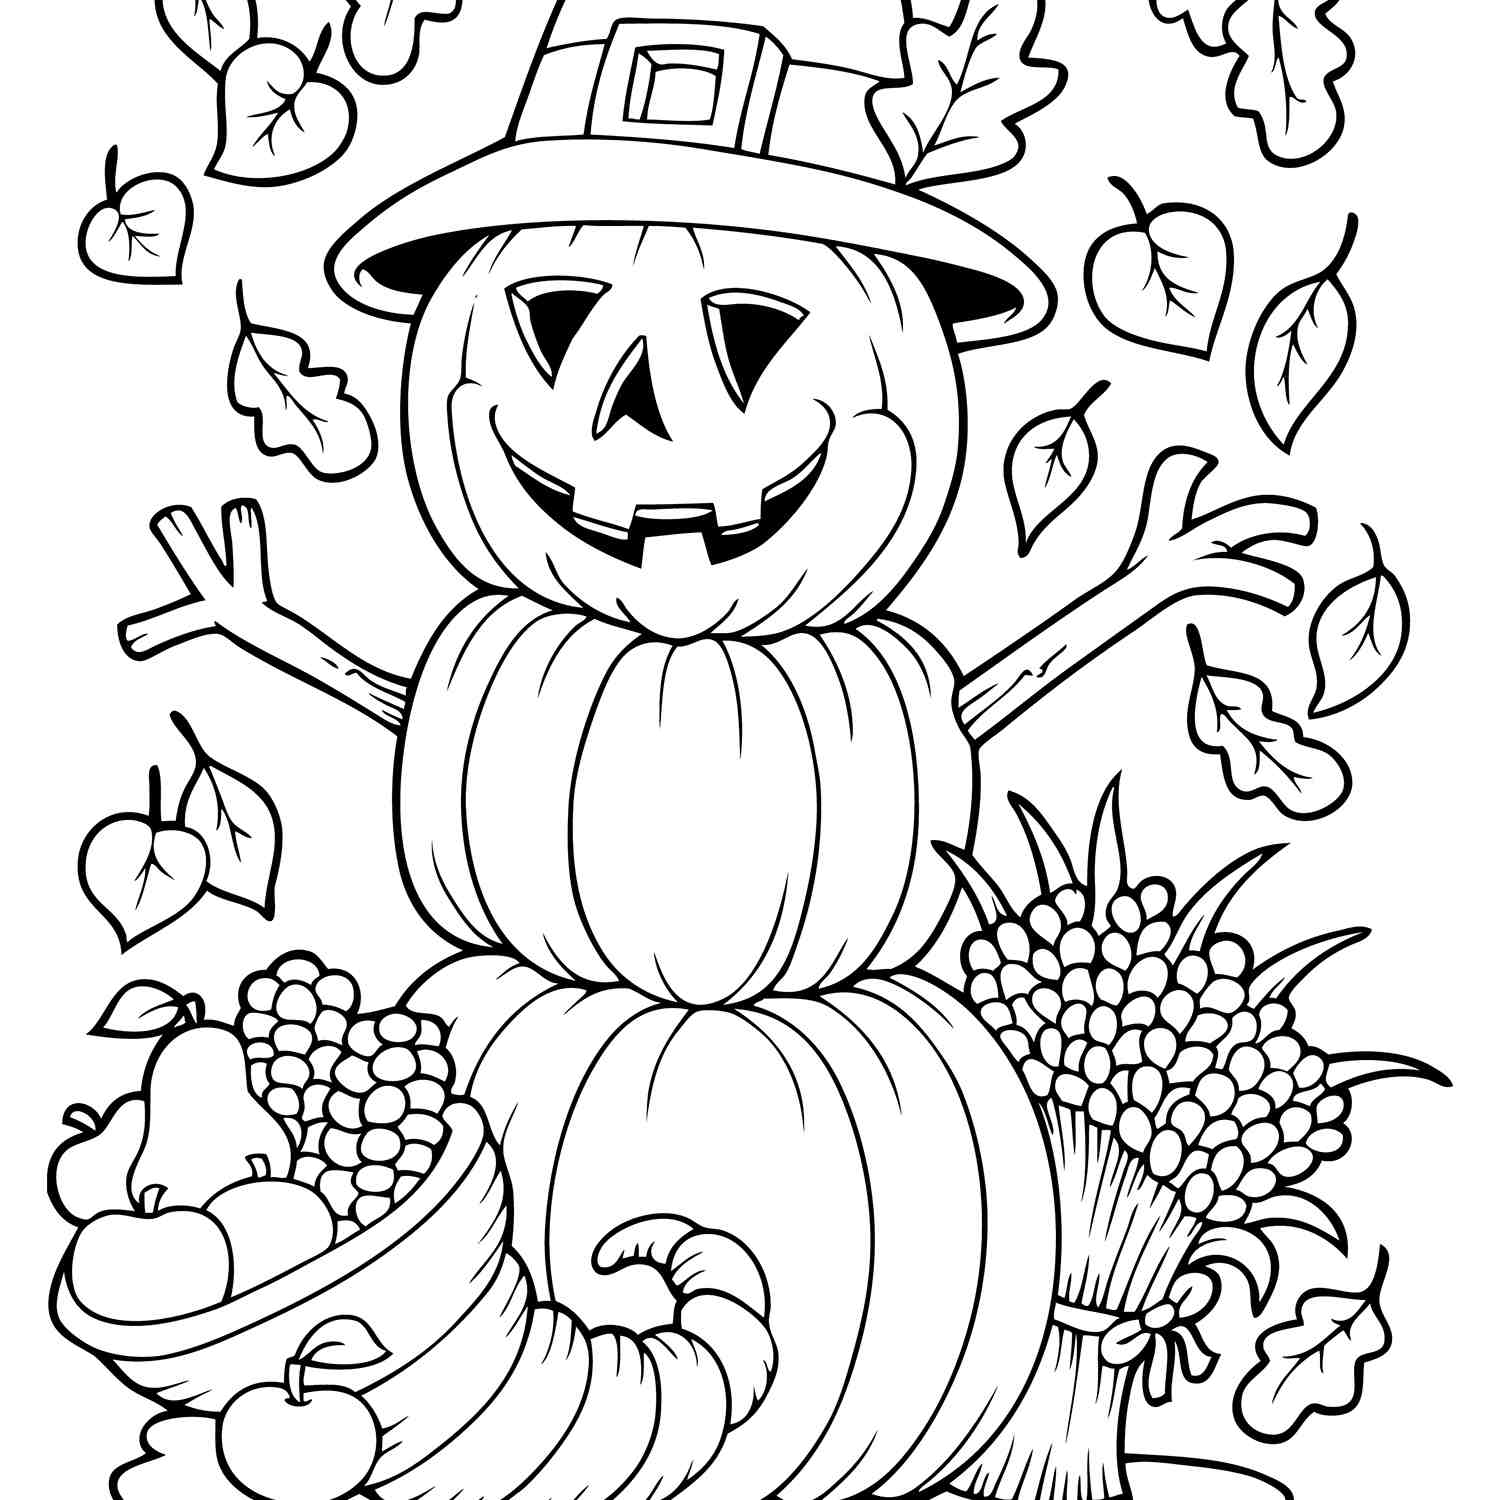 free coloring pages for kids to print out secret fall.html